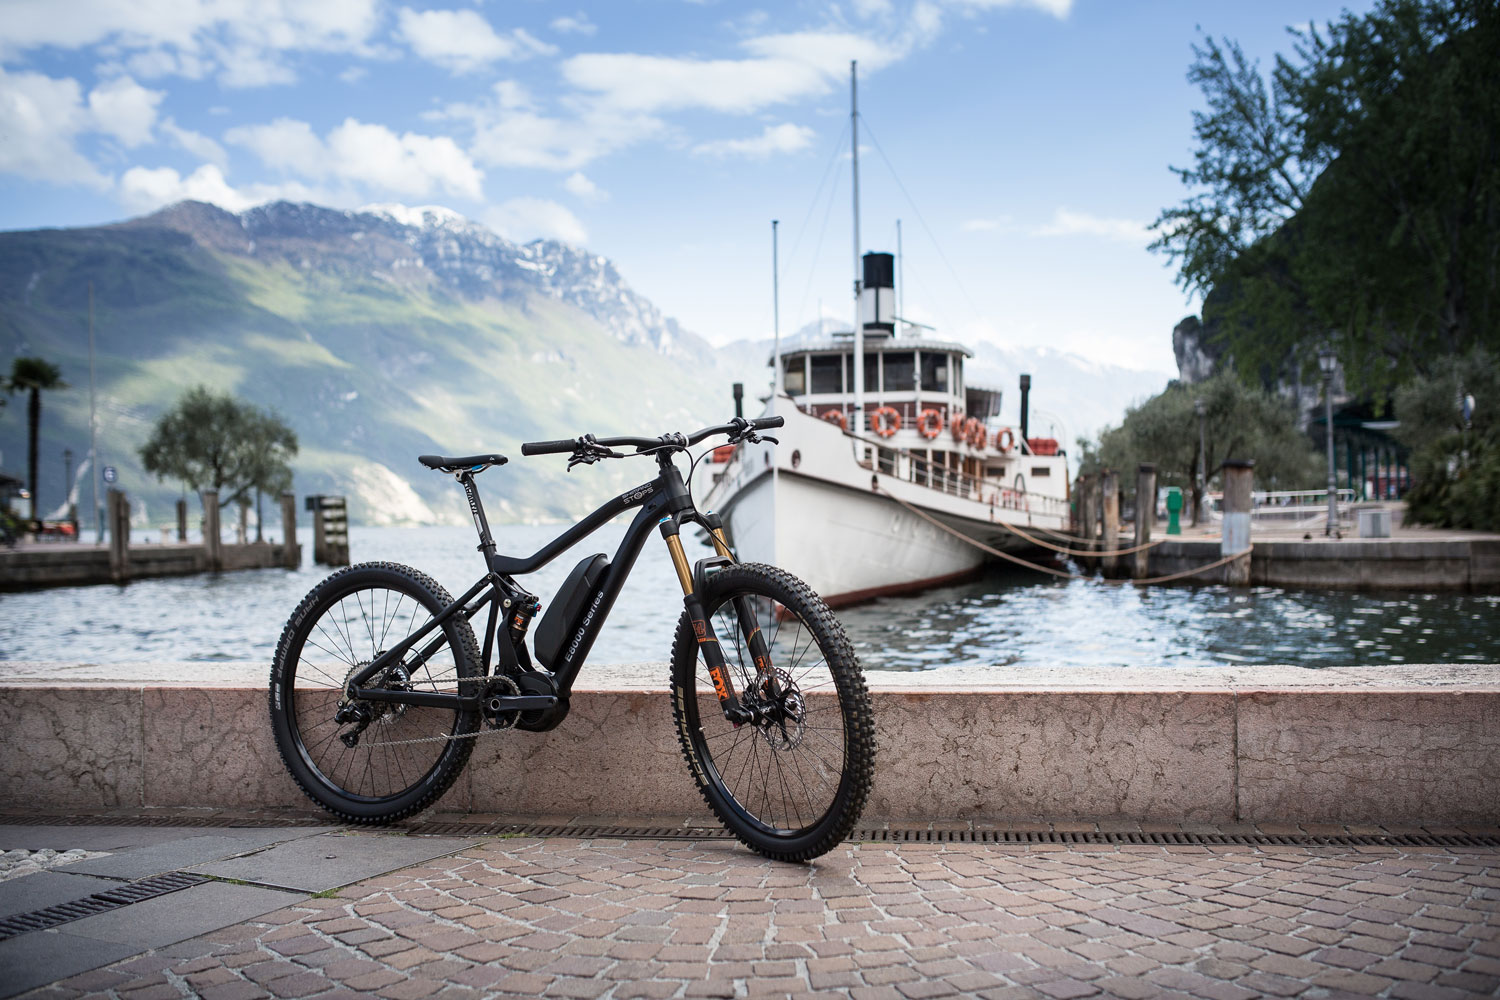 Shimano Shows E8000 Electric Assist Motor for Mountain Bikes